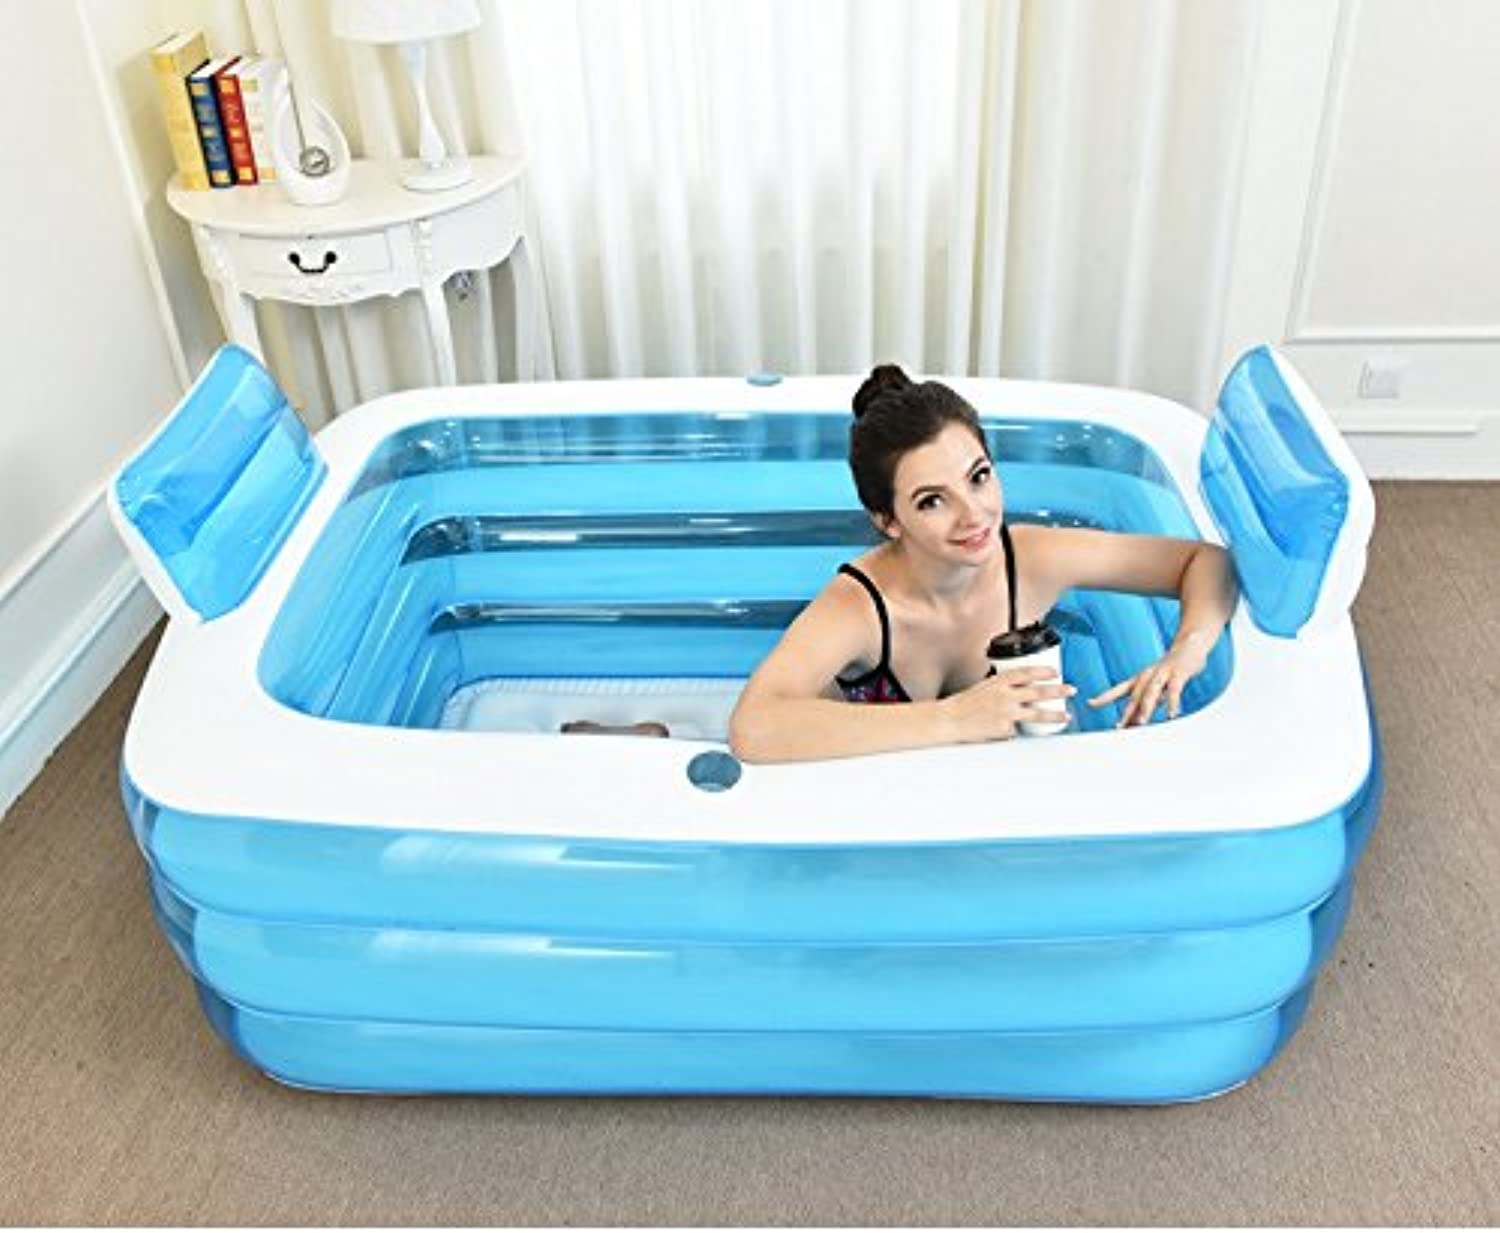 LybCvad Inflatable bathtub bath barrel adult plastic large household adult couple inflatable bath basin double thick bath barrel bath pool transparent bluee 1.5 meters back